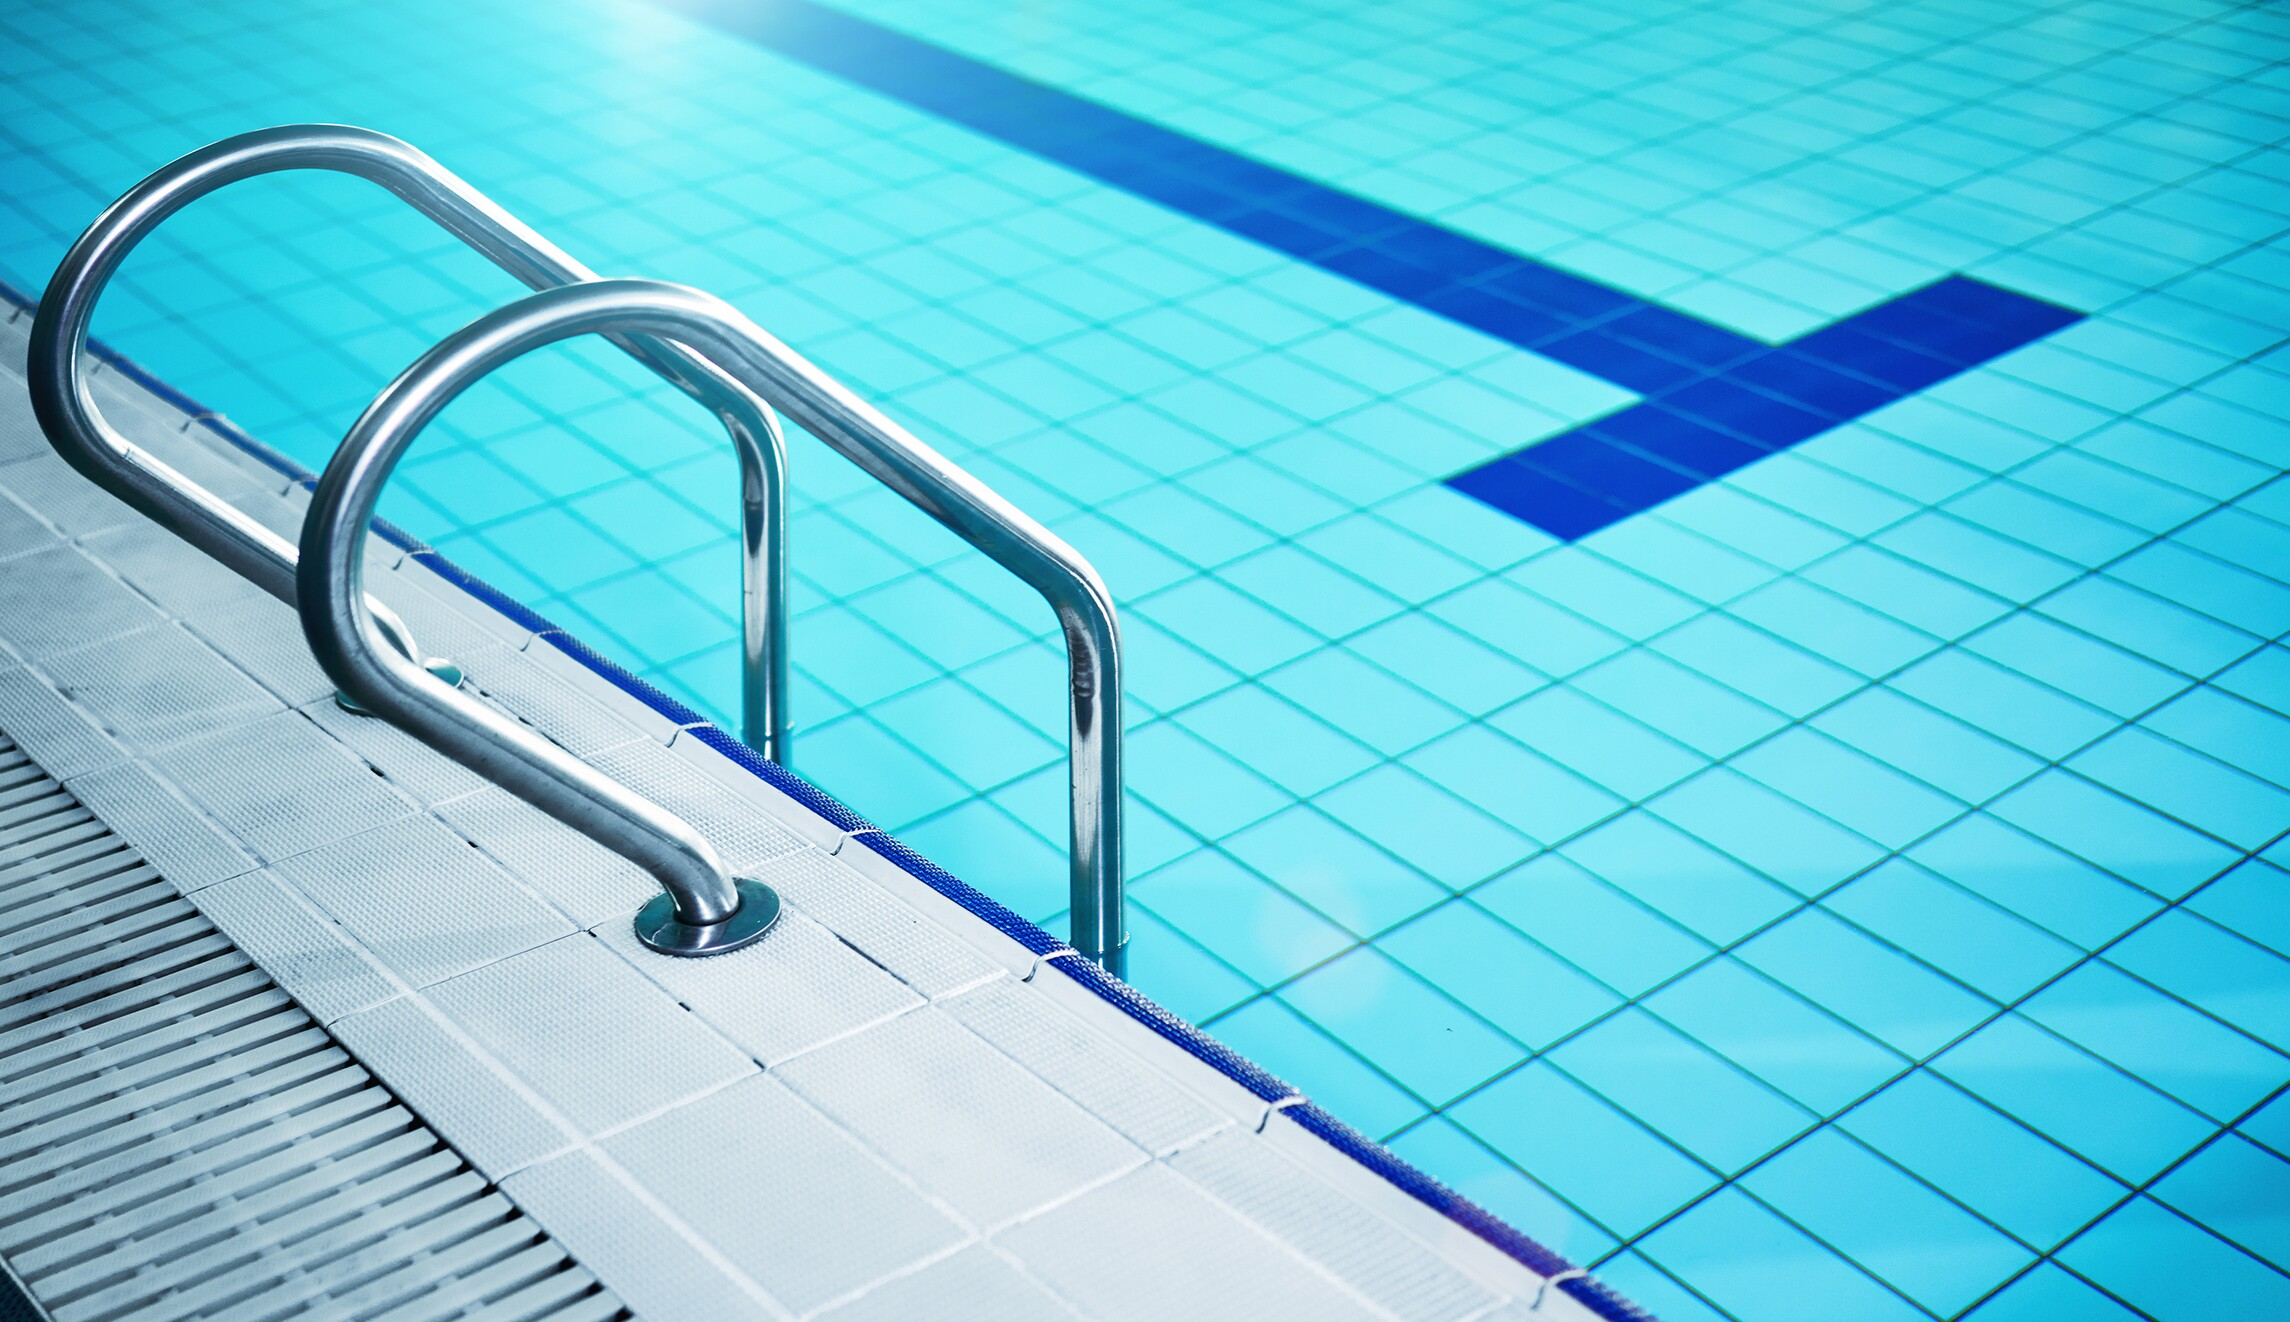 Hotel pools, hot tubs house a third of water germs